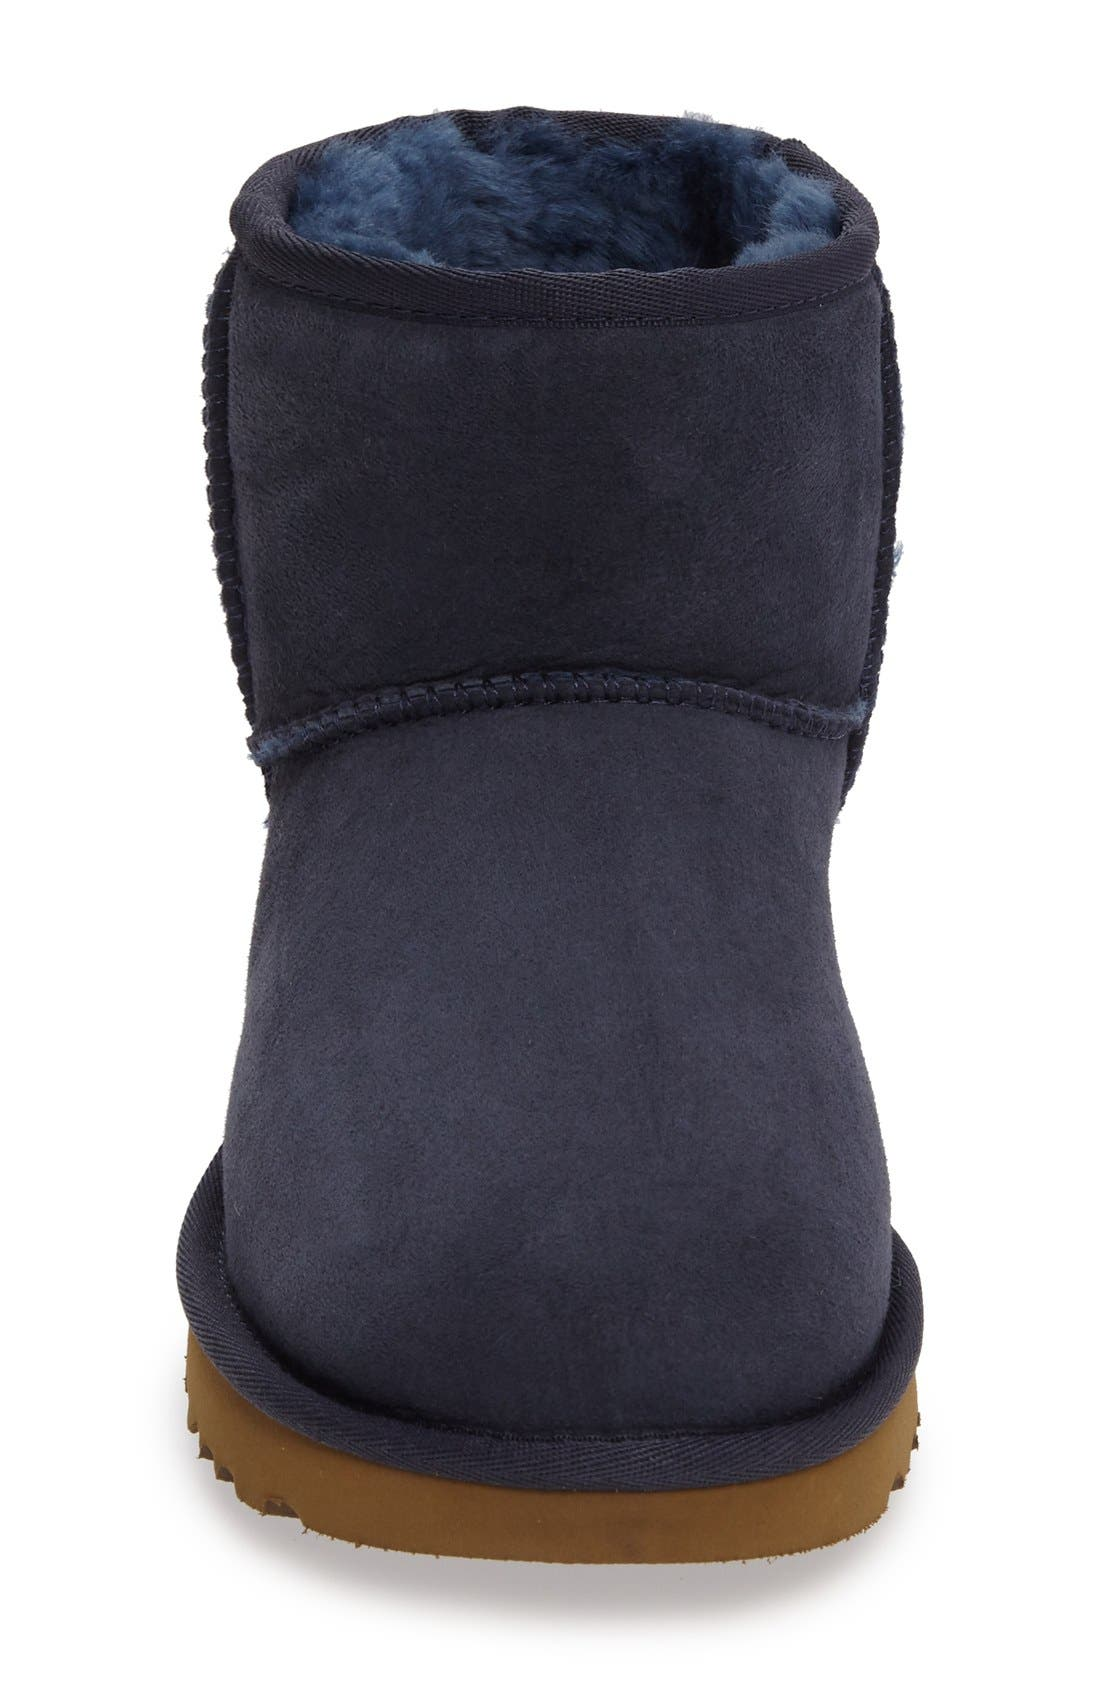 'Classic Mini II' Genuine Shearling Lined Boot,                             Alternate thumbnail 3, color,                             Navy Suede